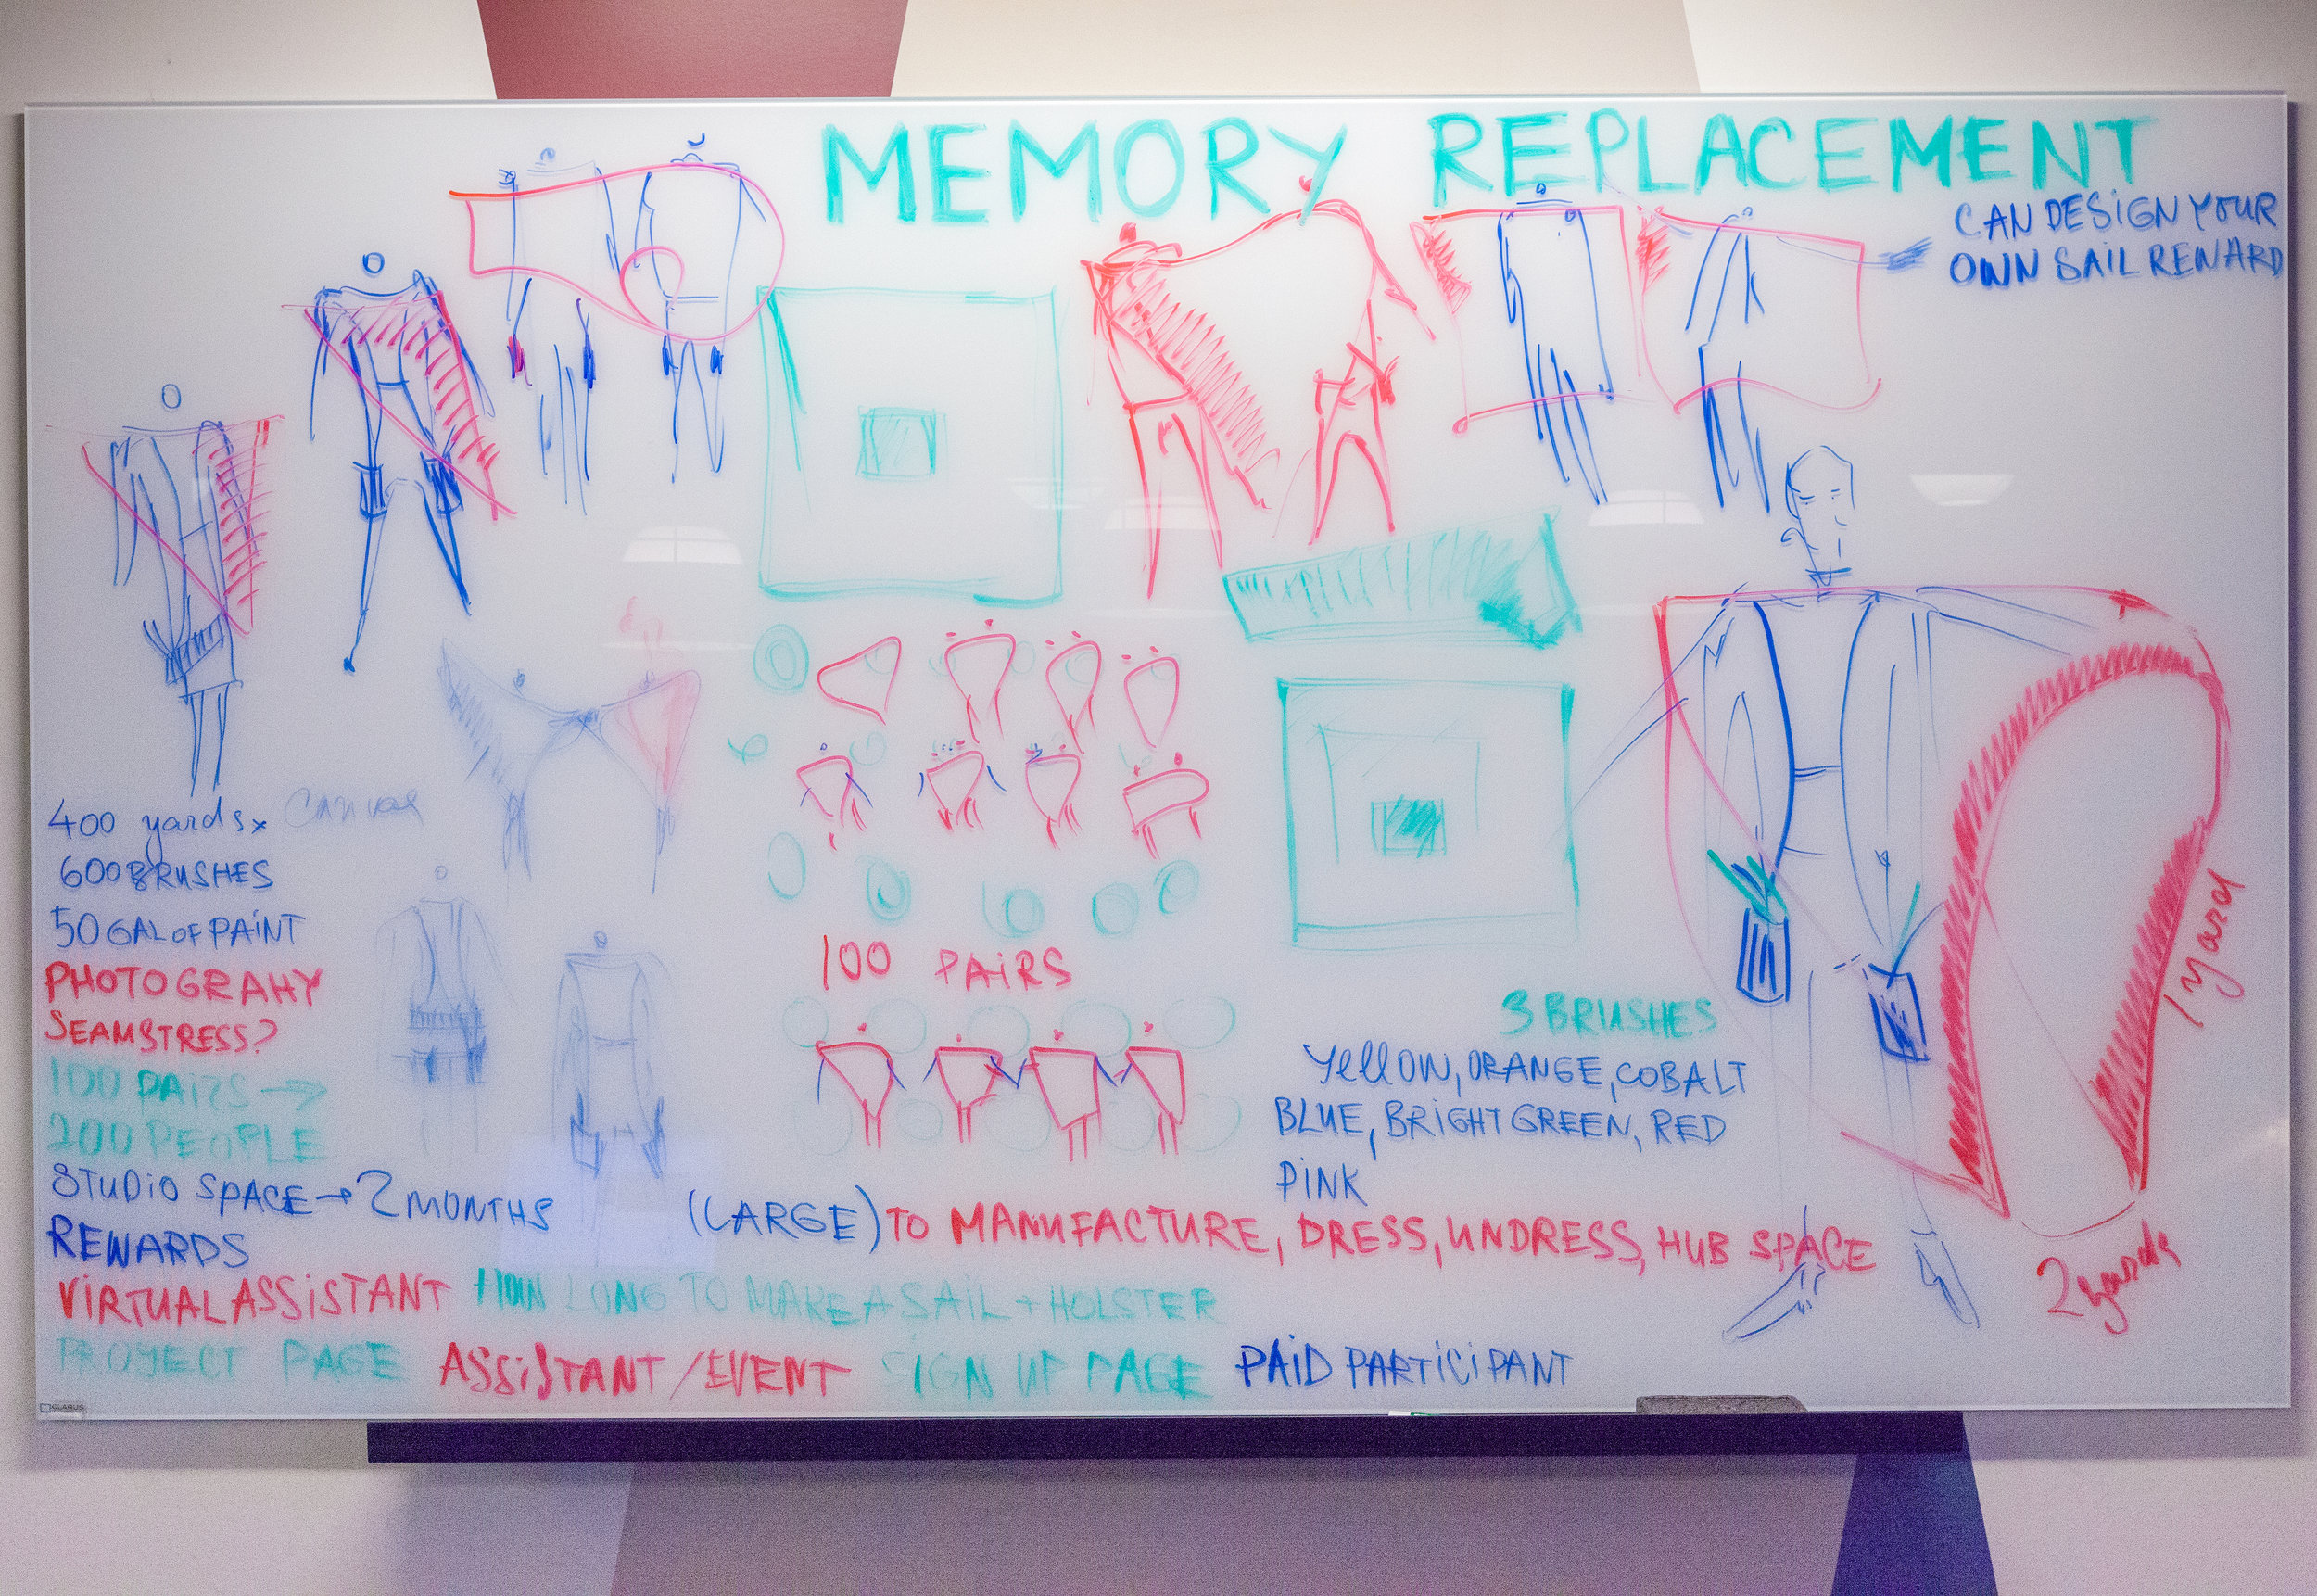 Charting Memory Replacement